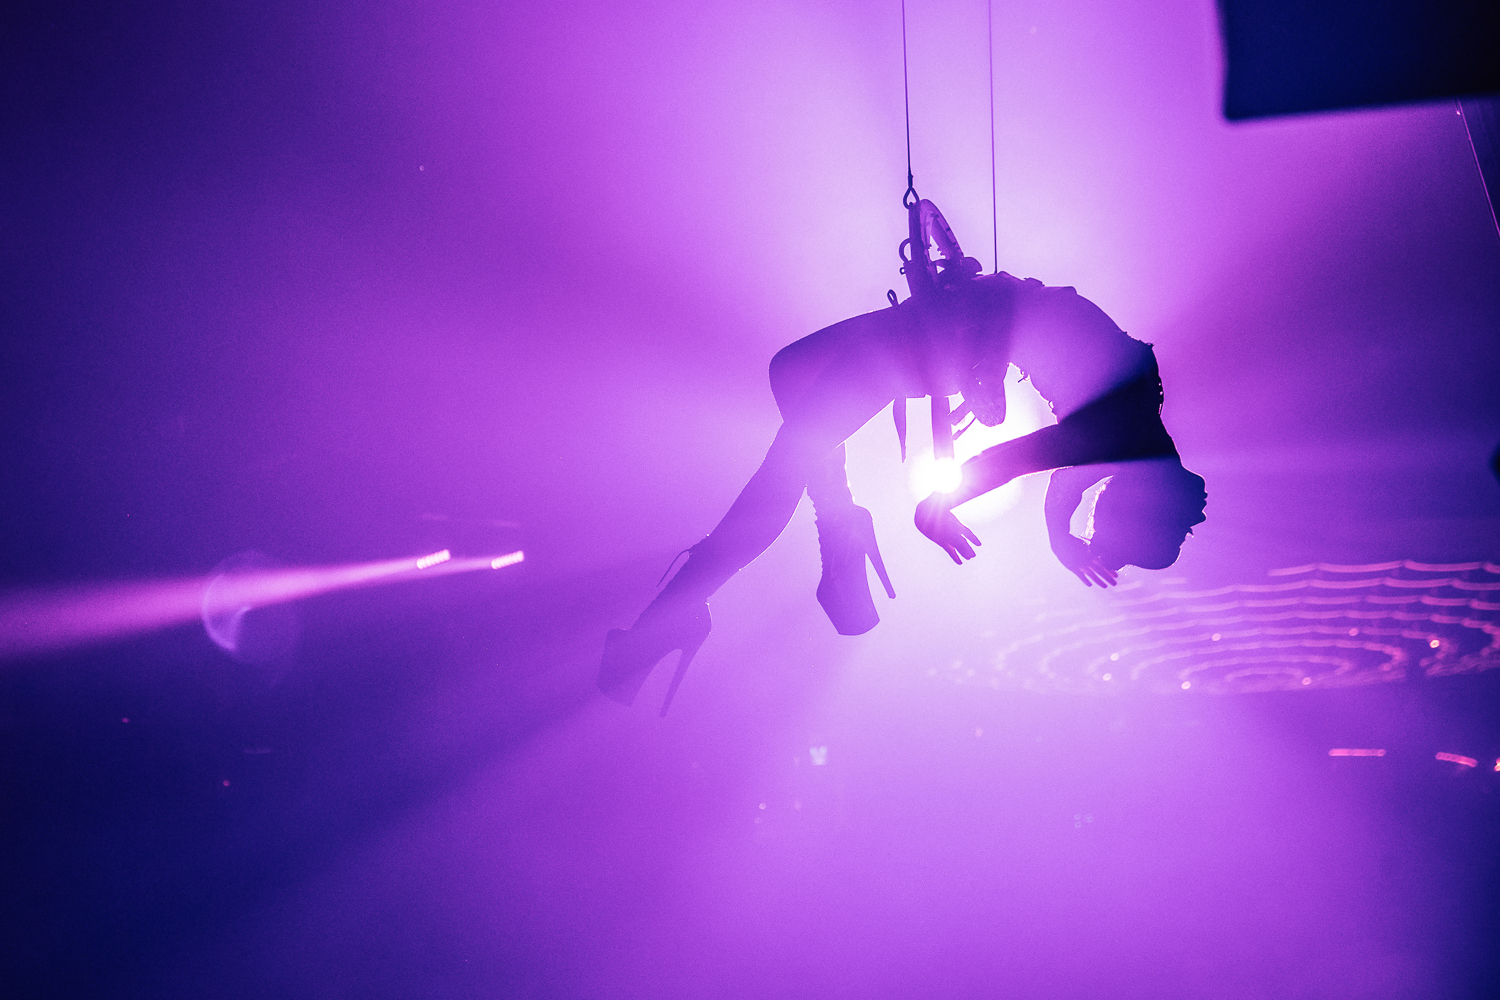 CLUB CHROMA at PARADISE CITY - In an aerial harness performance to accompany world renowned DJ, RL Grime